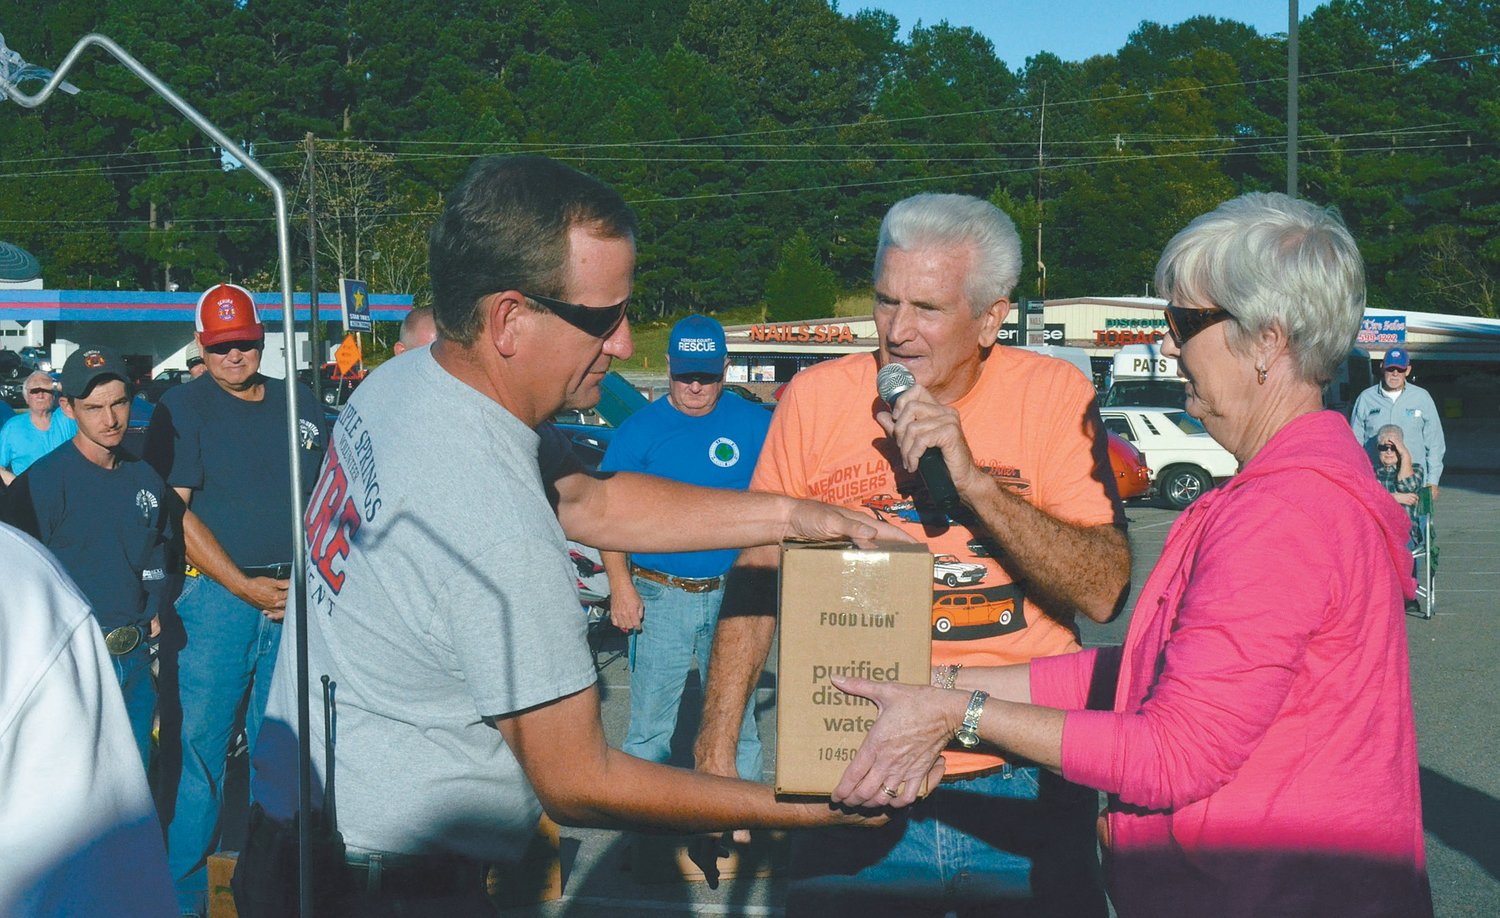 Firefighters from every department in Person County were given goodie bags courtesy of the Memory Lane Cruisers Car Club. PHOTOS BY JOHNNY WHITFIELD | COURIER-TIMES